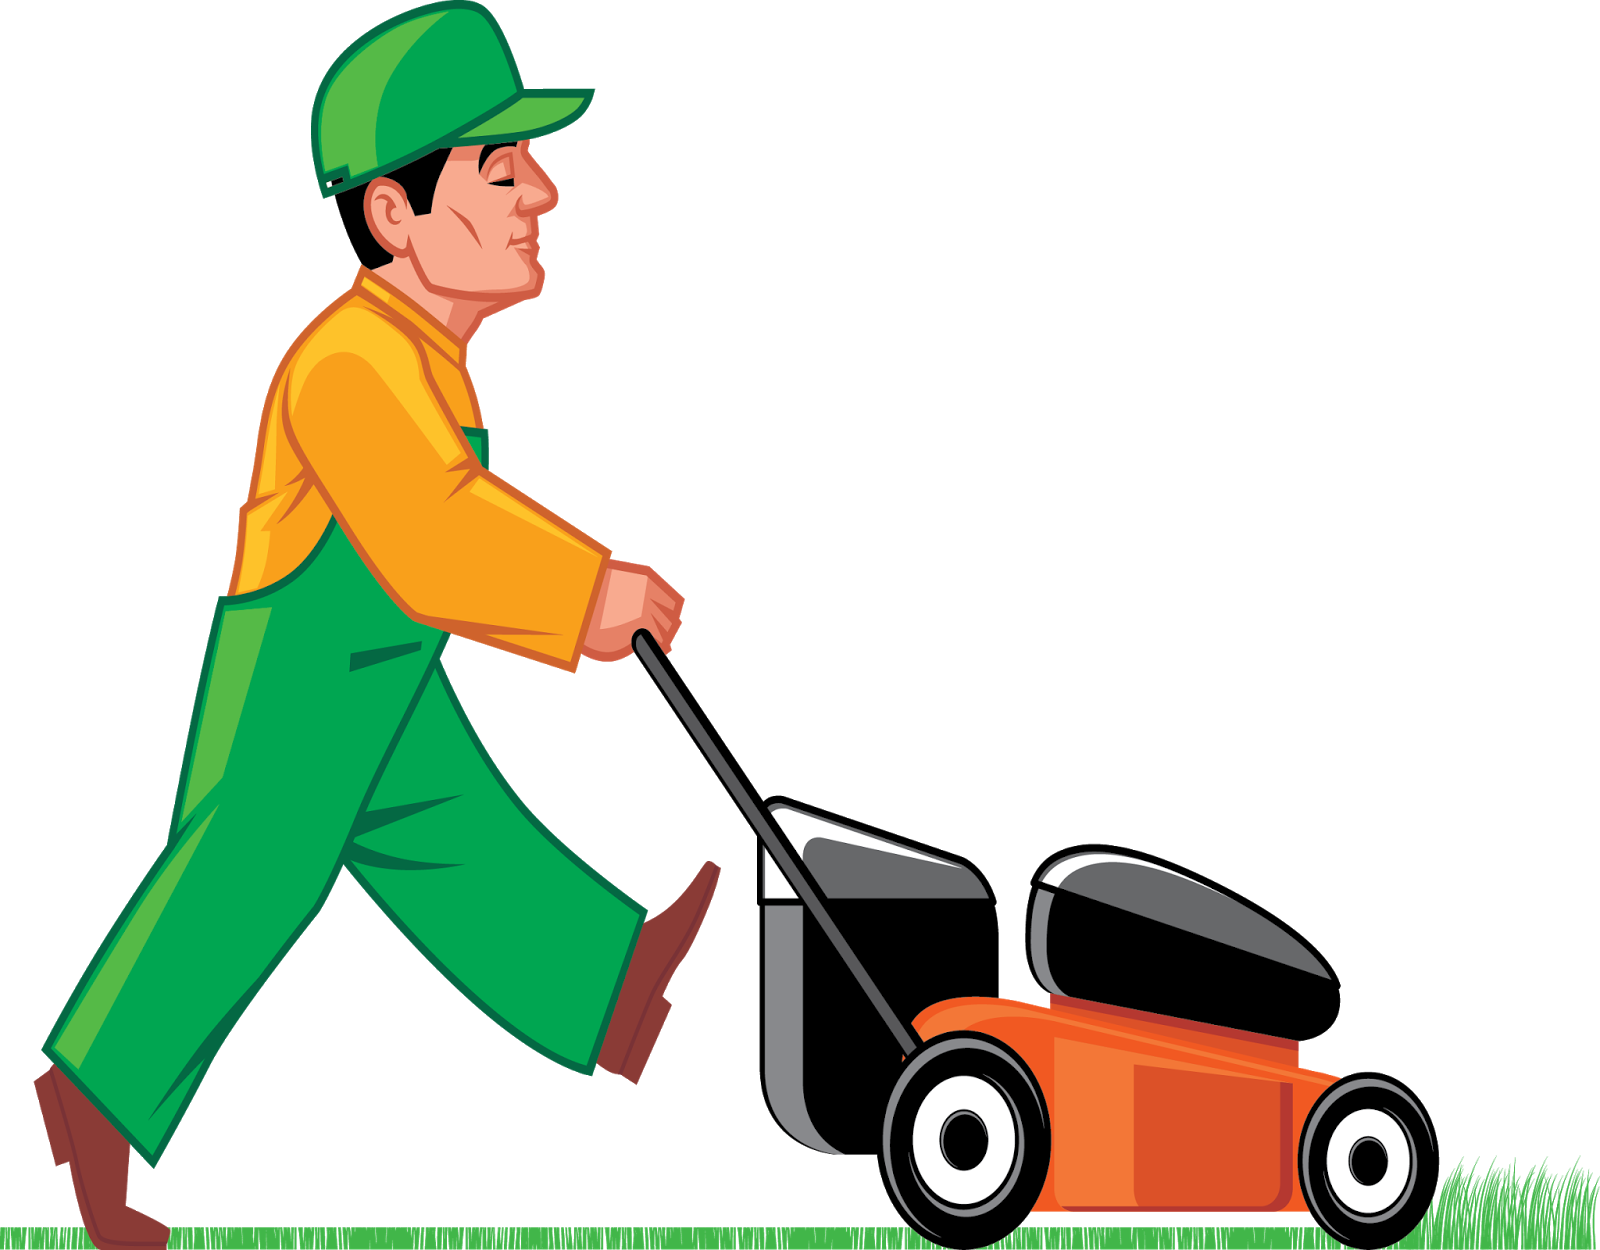 graphic black and white stock Mi padre tiene que. Lawn mower clipart grass cutter.